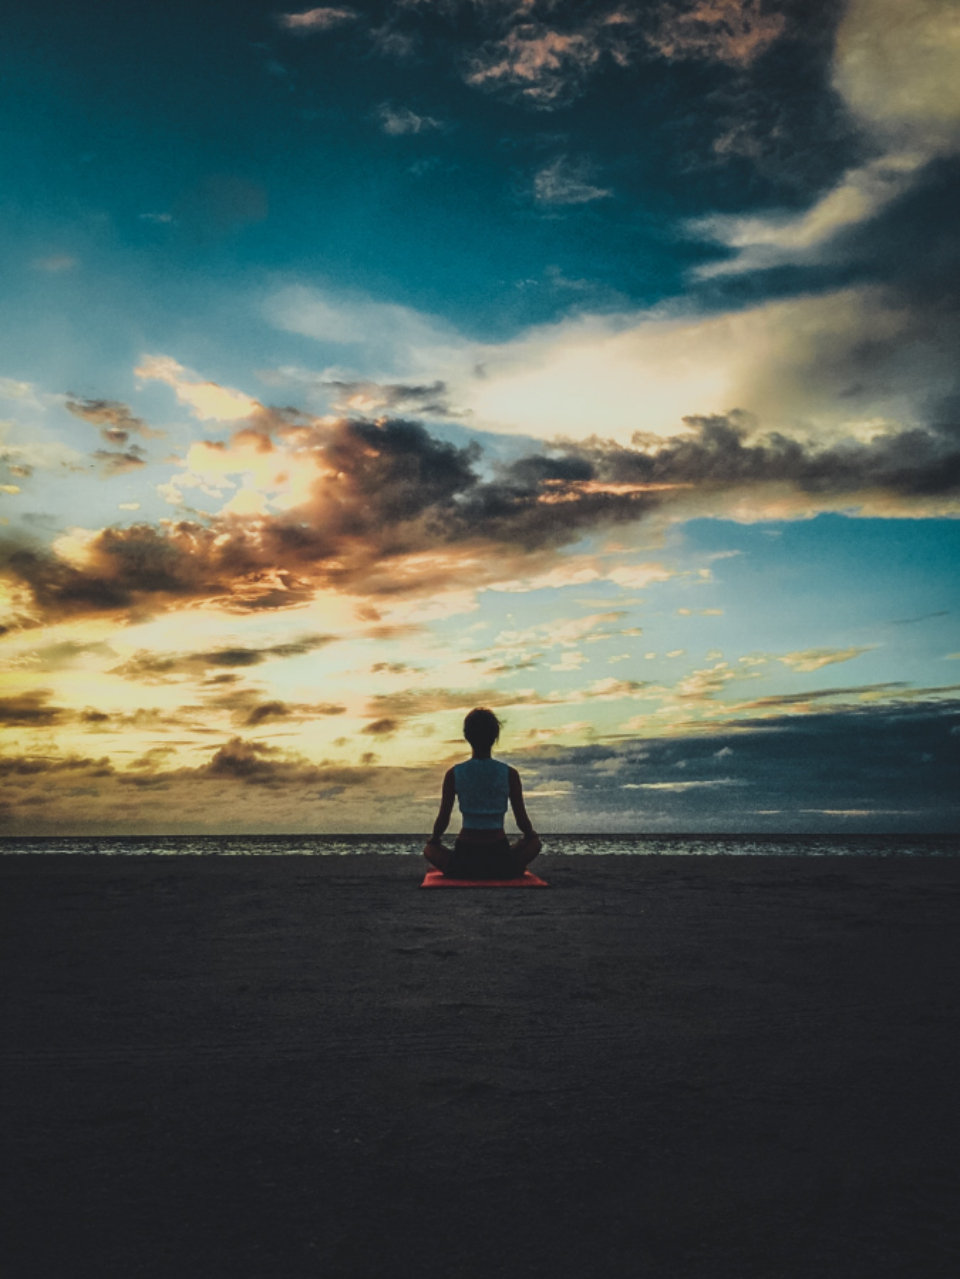 woman beach yoga sunset evening dusk summer clouds girl female people person relax alone still calm